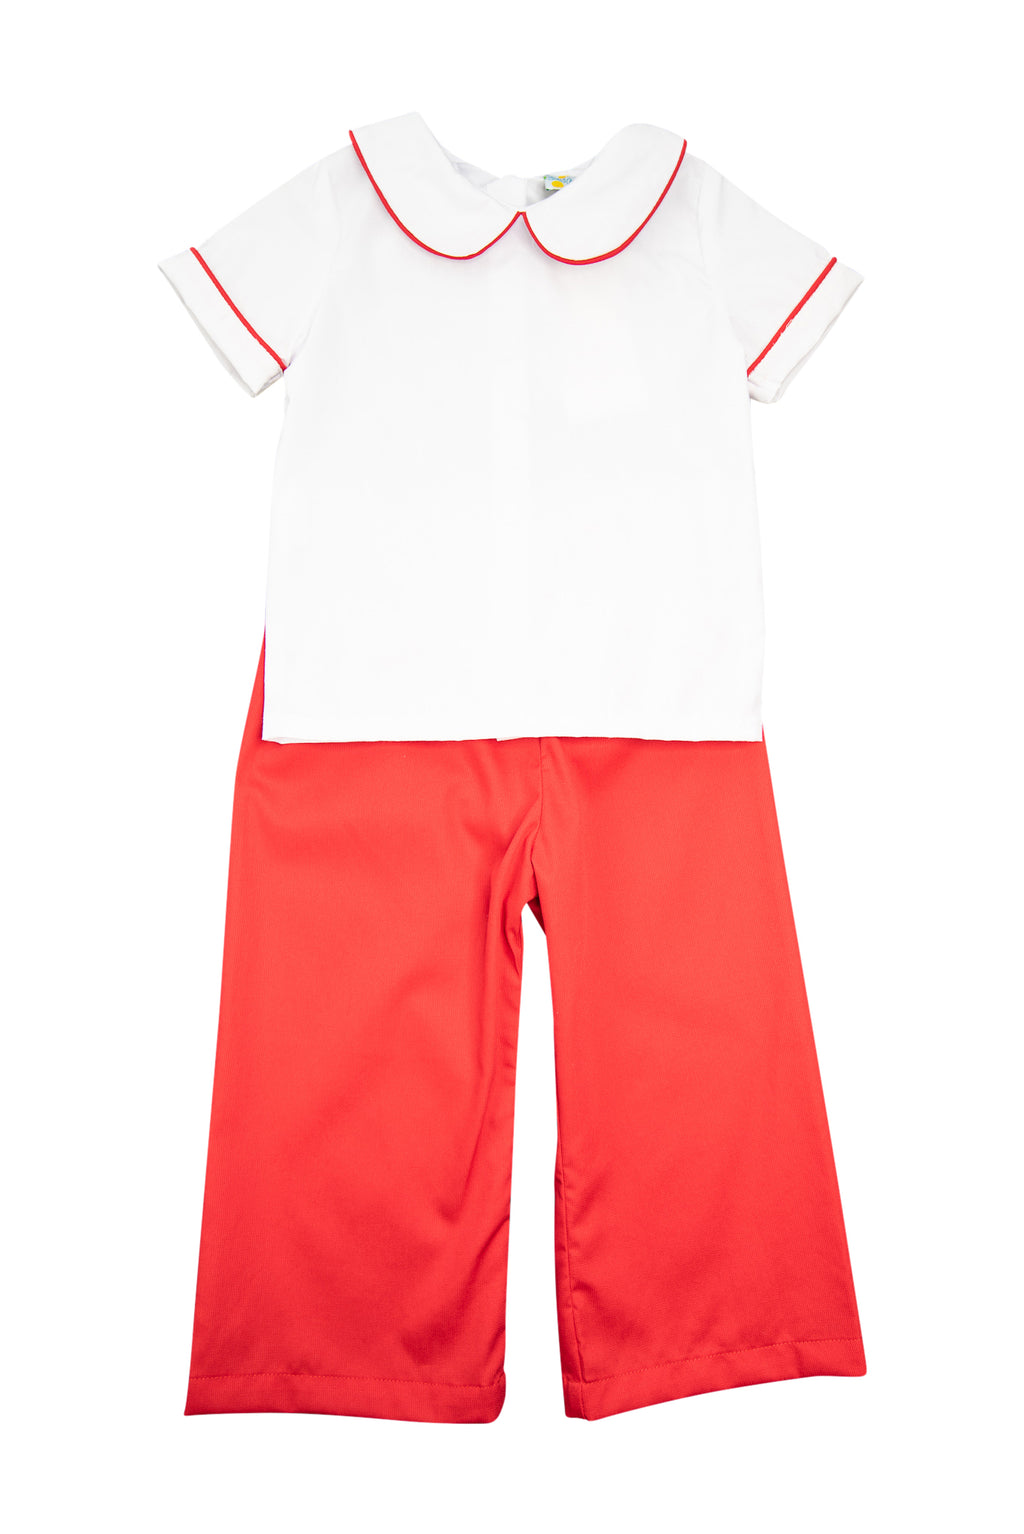 Boys White and Red Pant Set